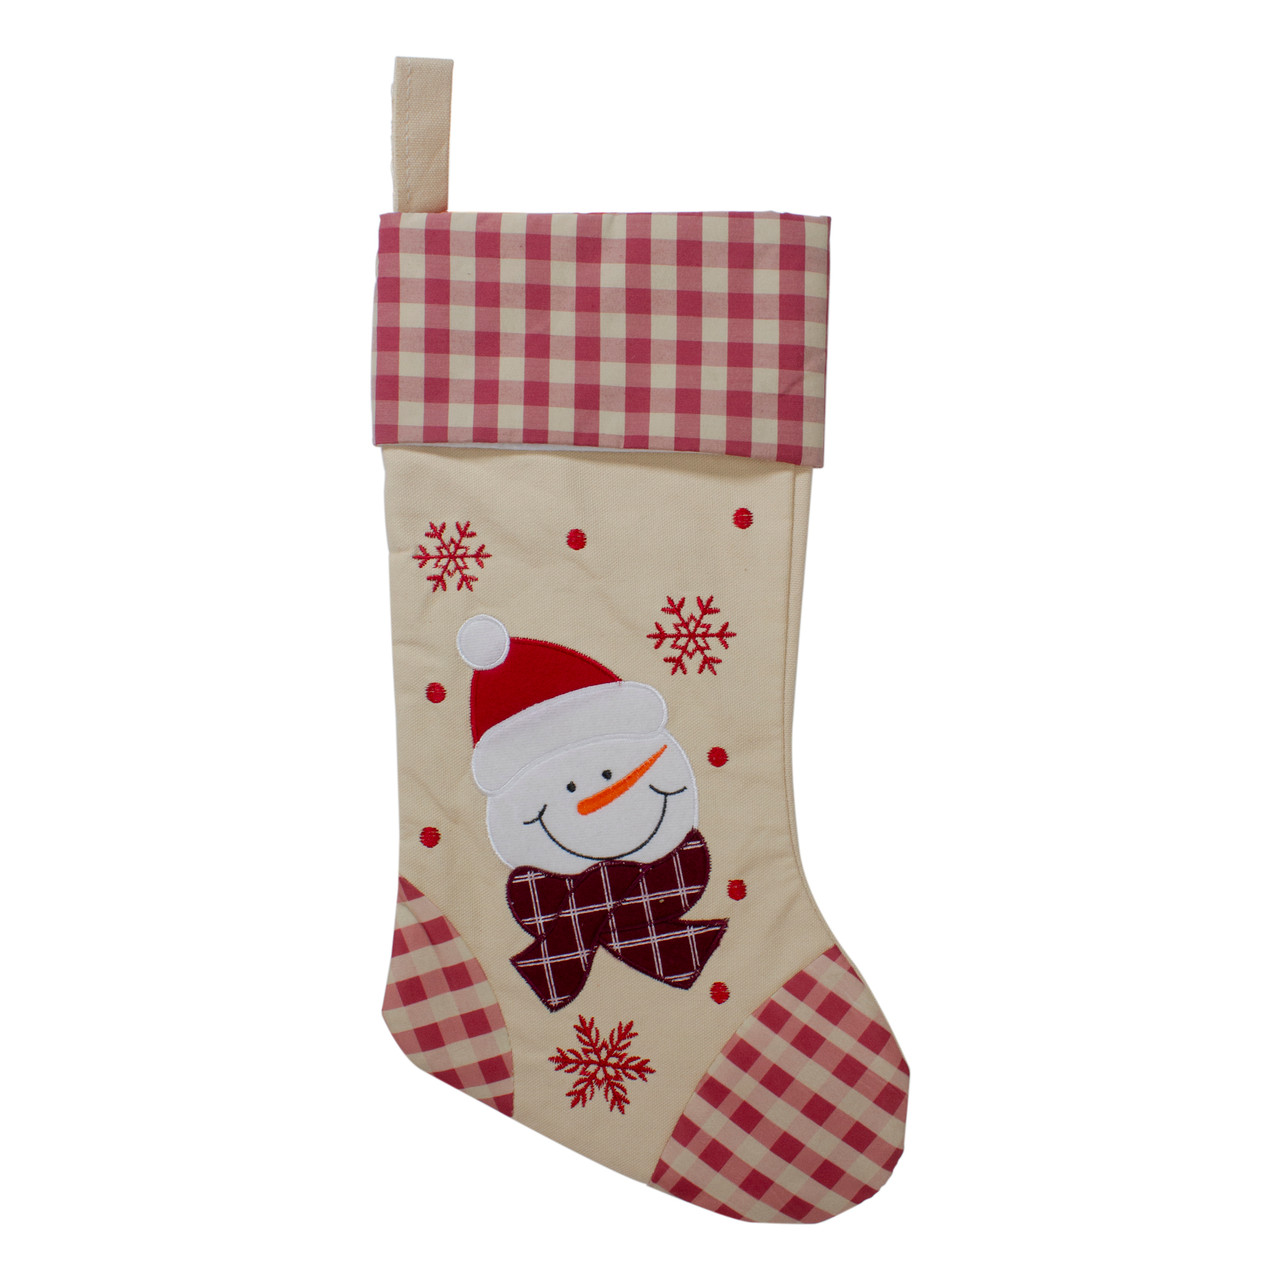 17 Red Beige Burlap Embroidered Snowman Christmas Stocking With Red Gingham Cuff Christmas Central